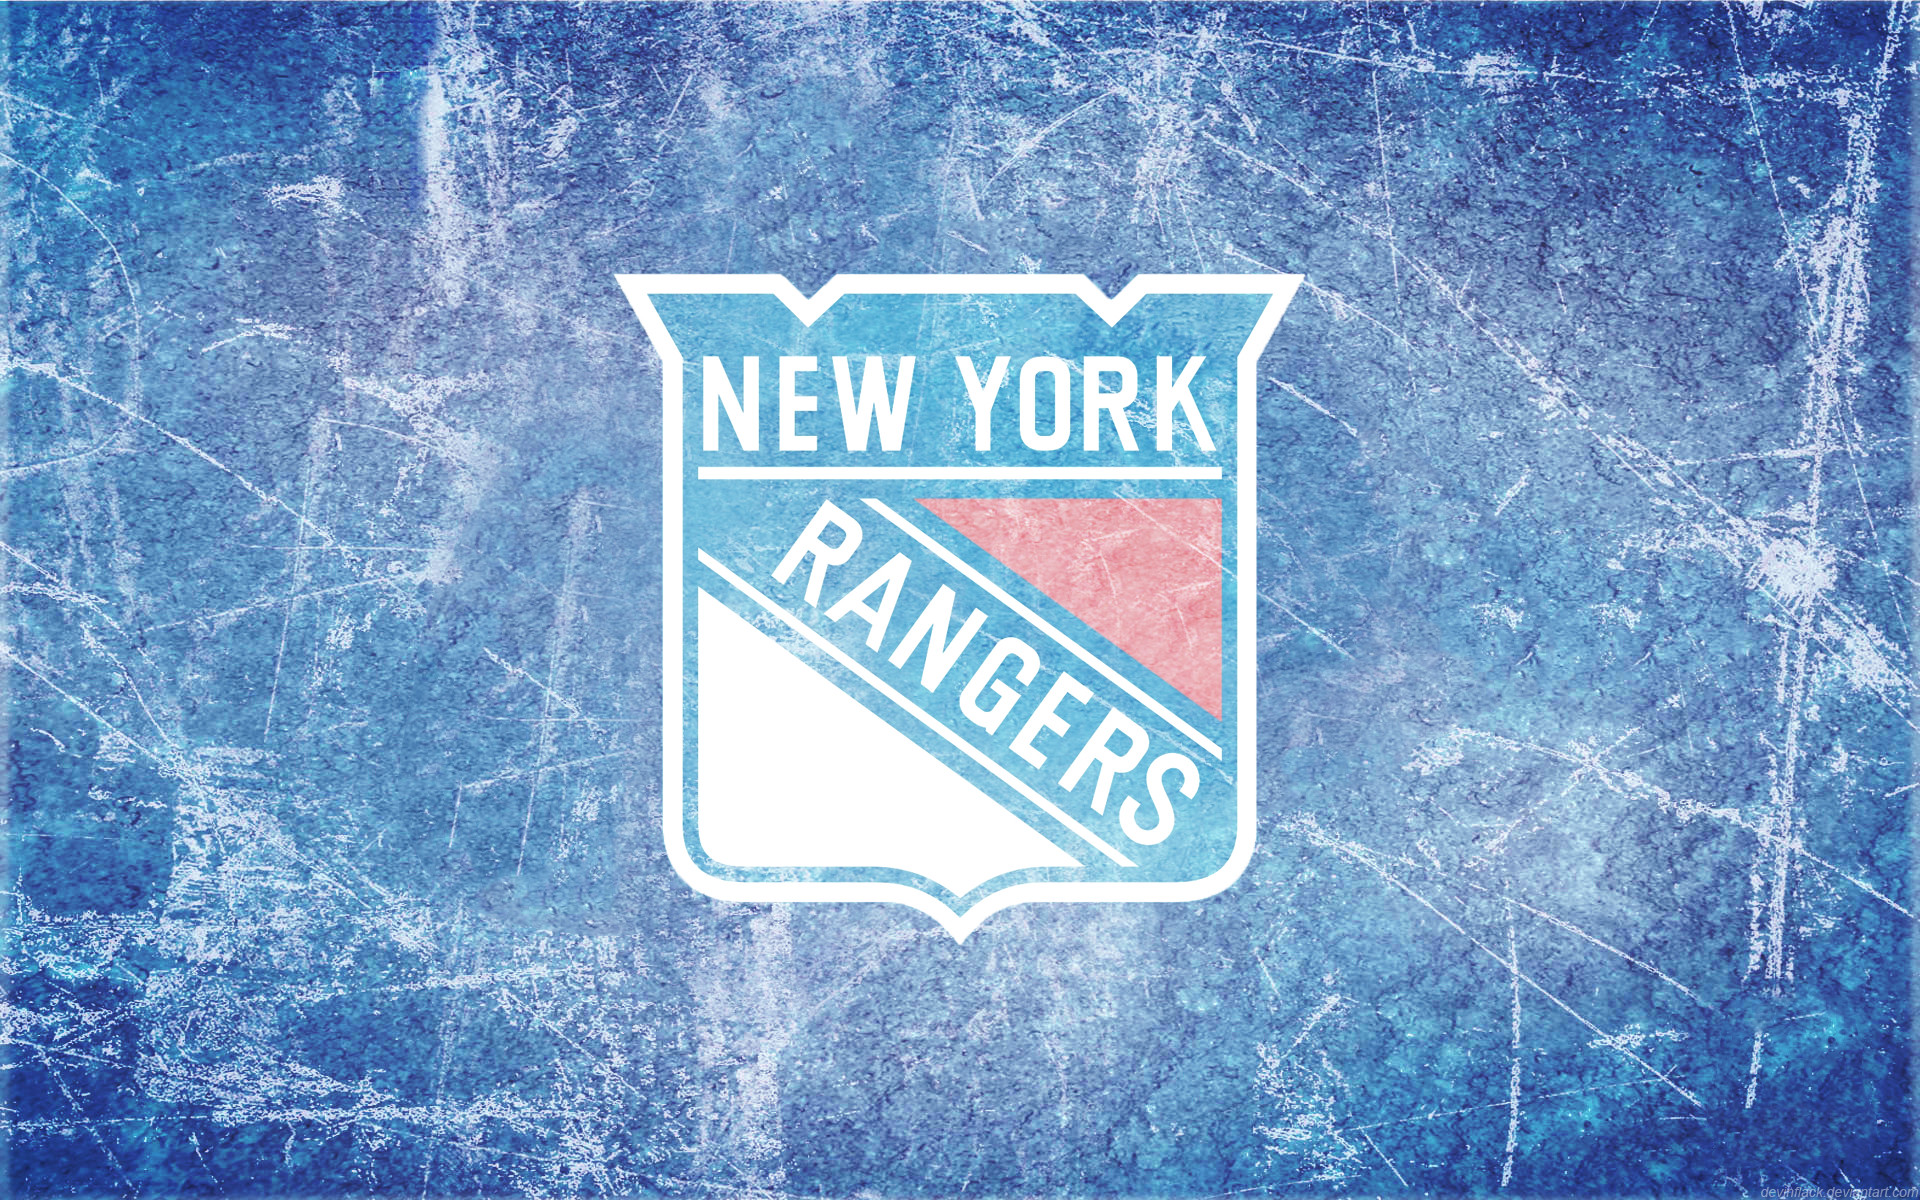 Texas Rangers Wallpapers | NMgnCP PC Gallery